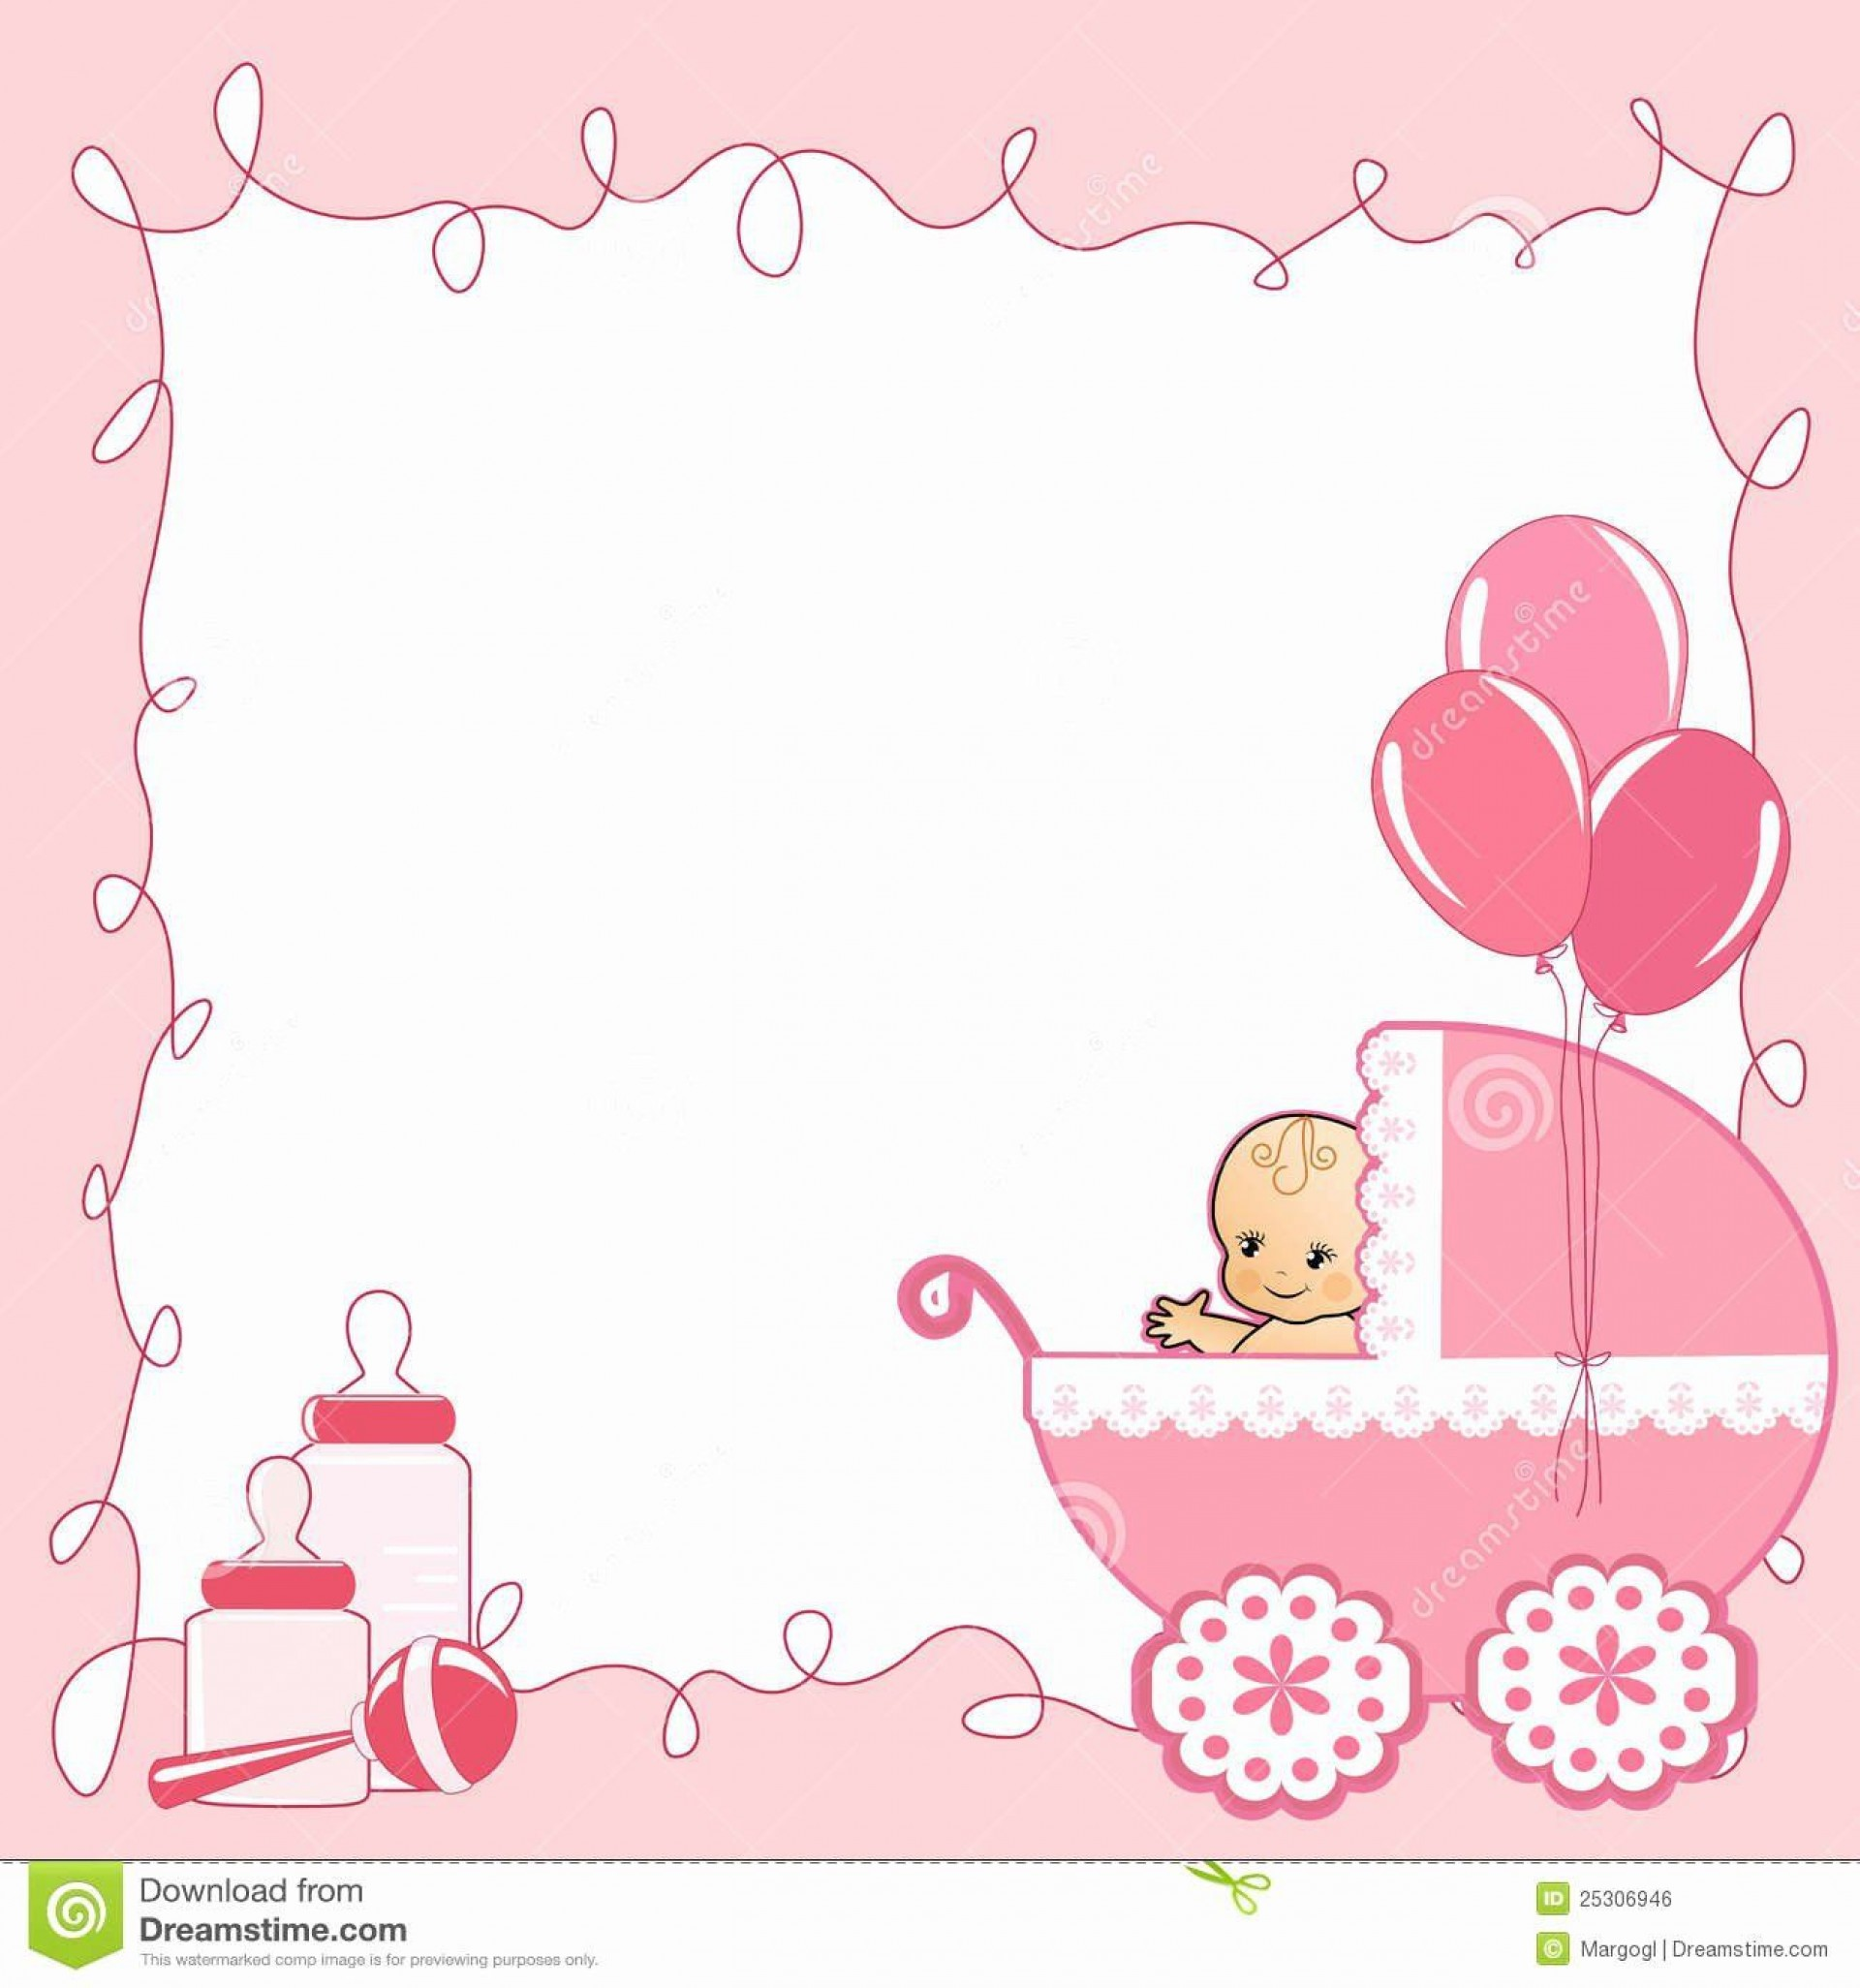 000 Top Baby Shower Card Template Inspiration  Microsoft Word Invitation Design Online Printable Free1920